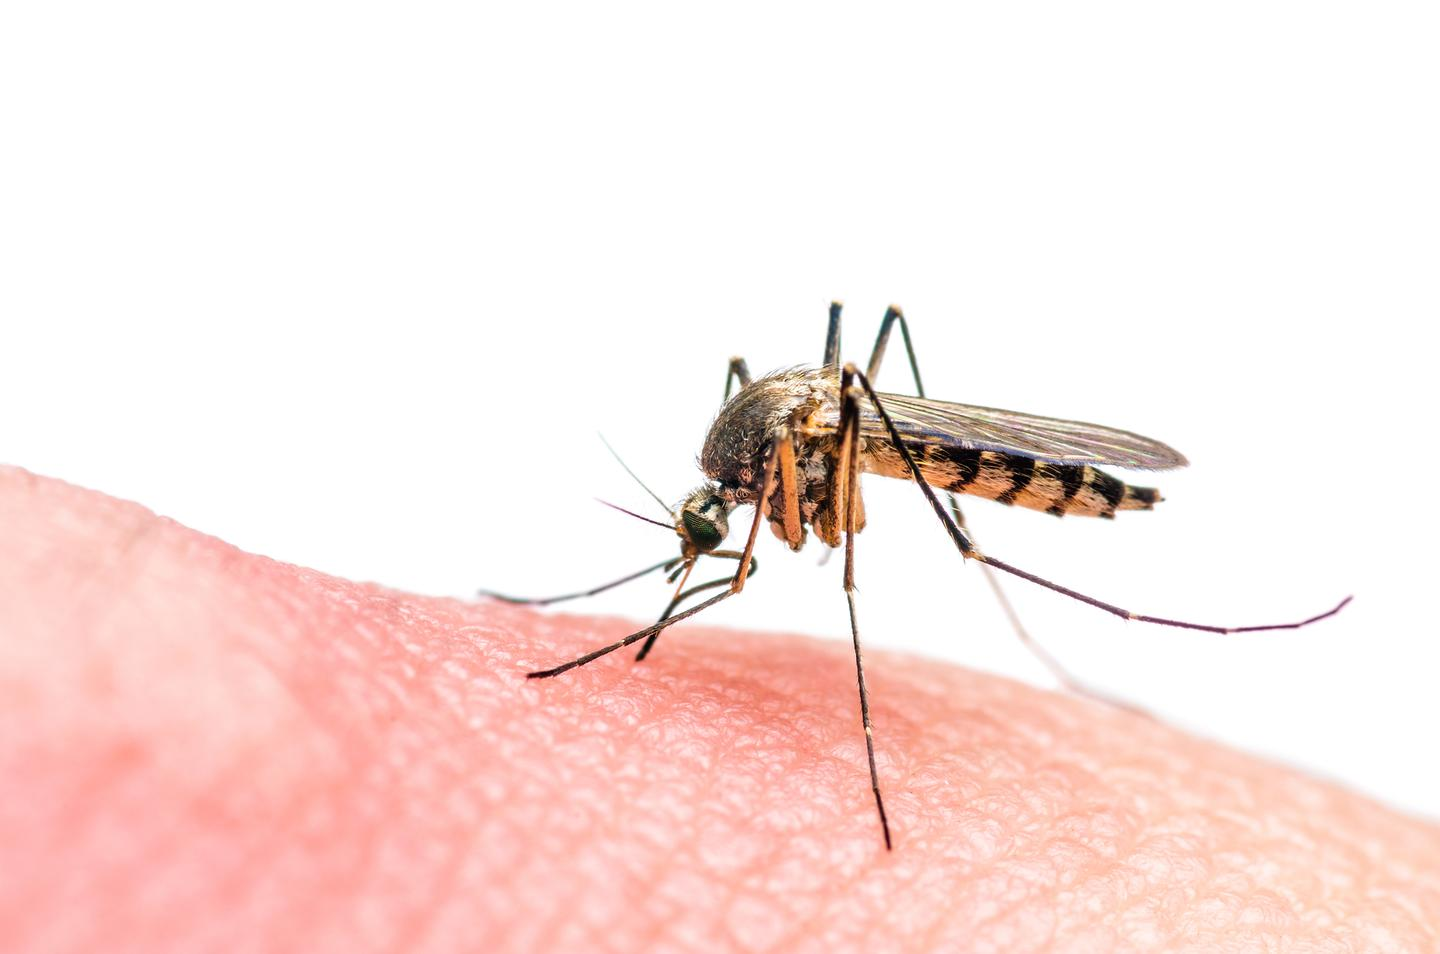 Researchers have identified a mechanism that could enable a better malaria vaccine